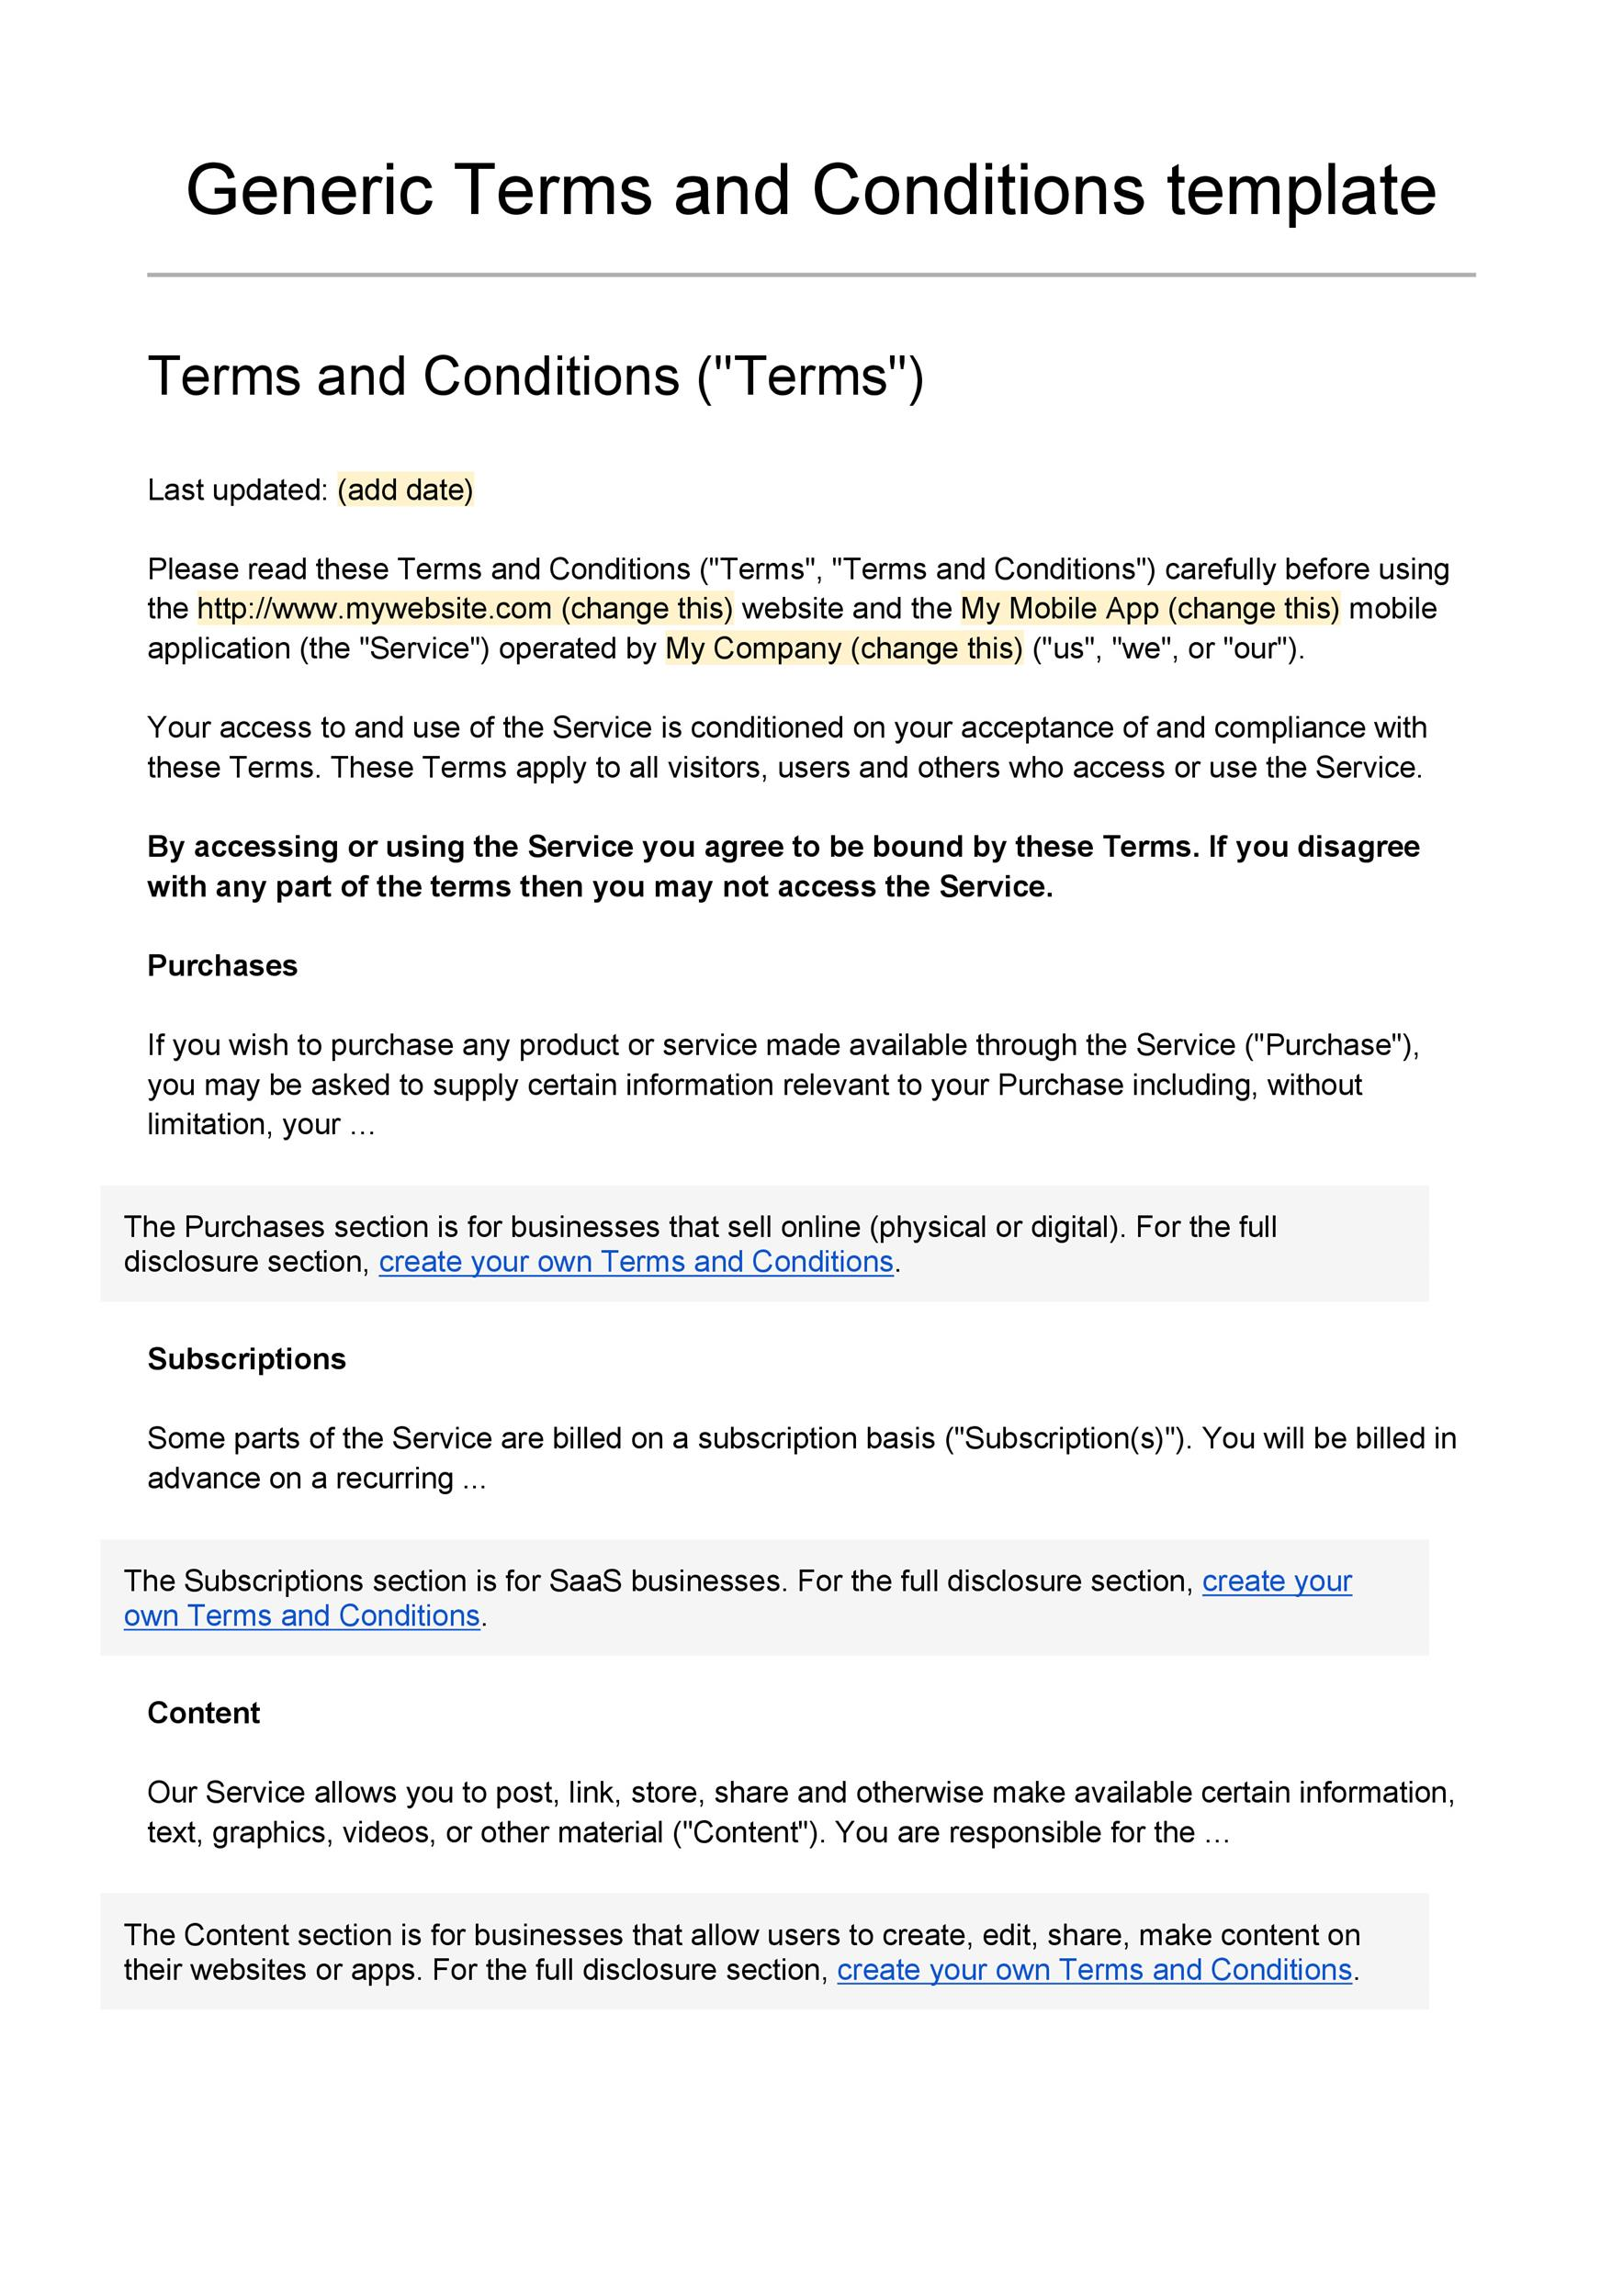 40 free terms and conditions templates for any website template lab free terms and conditions template 01 friedricerecipe Choice Image